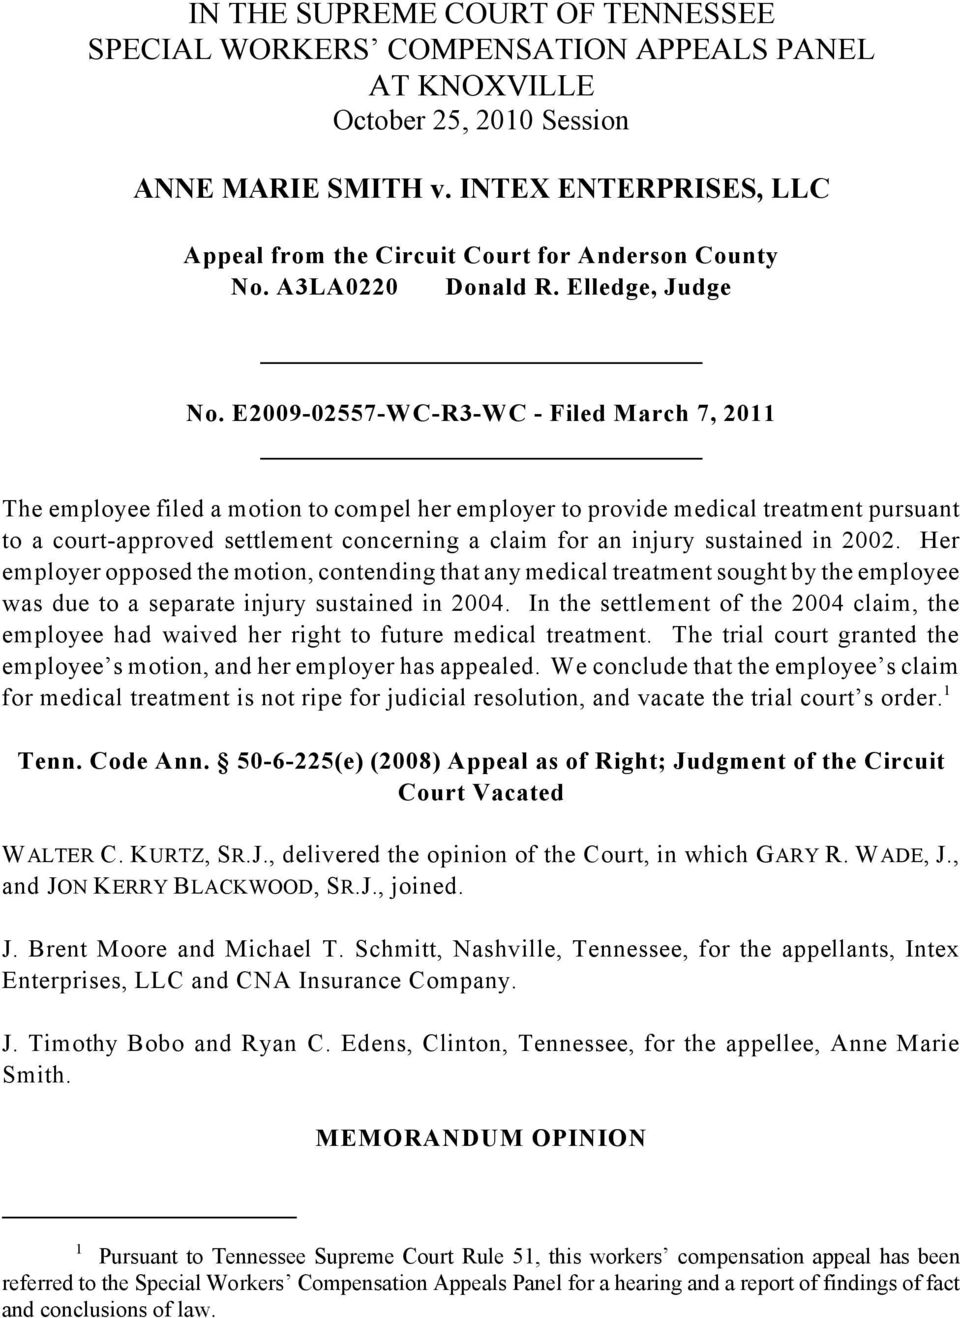 E2009-02557-WC-R3-WC - Filed March 7, 2011 The employee filed a motion to compel her employer to provide medical treatment pursuant to a court-approved settlement concerning a claim for an injury